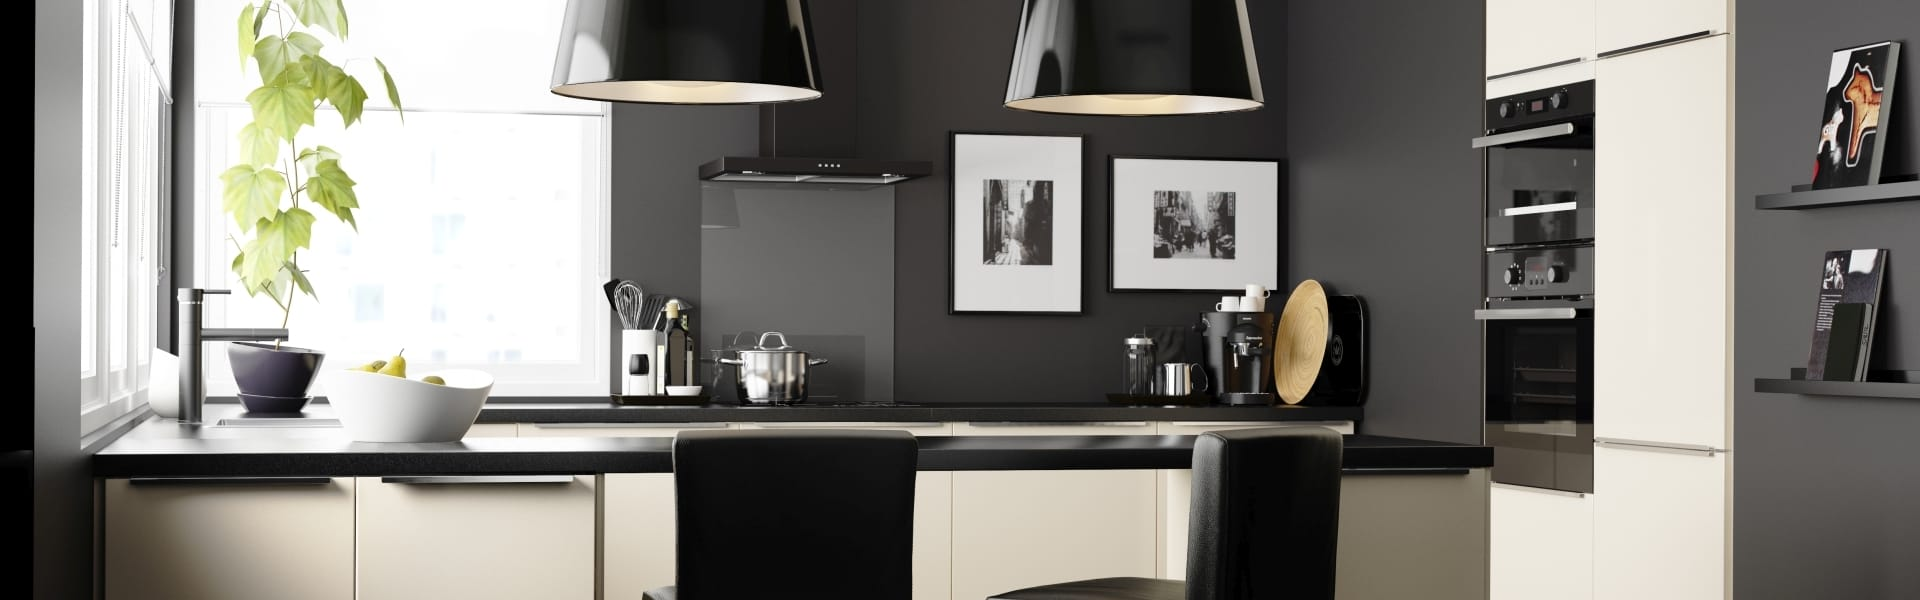 Putting The Cgi In Ikea How V Ray Helps Visualize Perfect